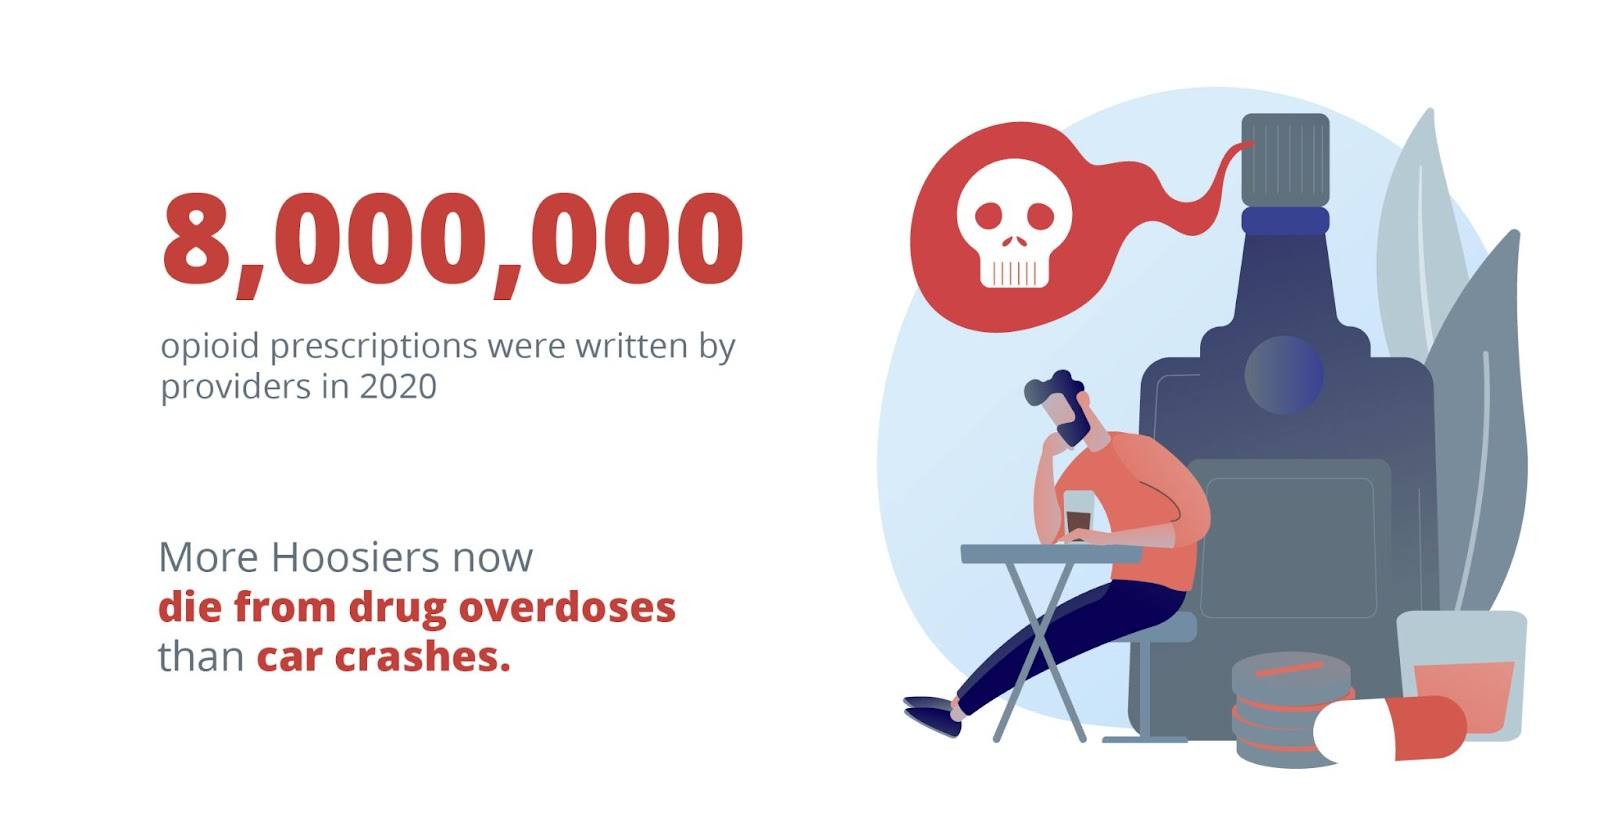 8,000,000 opioid prescriptions were written by providers in 2020. More hoosiers now die from drug overdoses than car crashes.